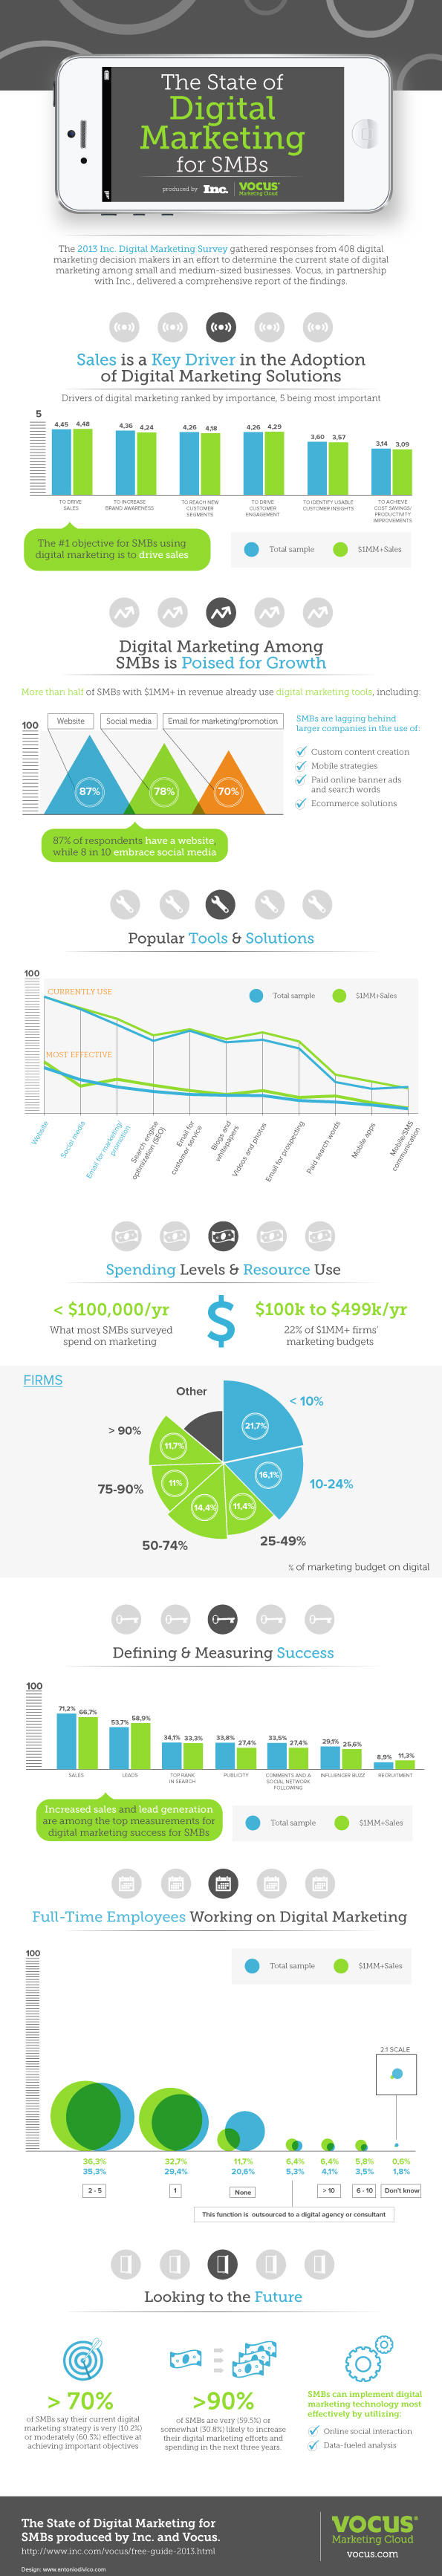 INFOGRAPHIC: The State of Digital Marketing for SMBs